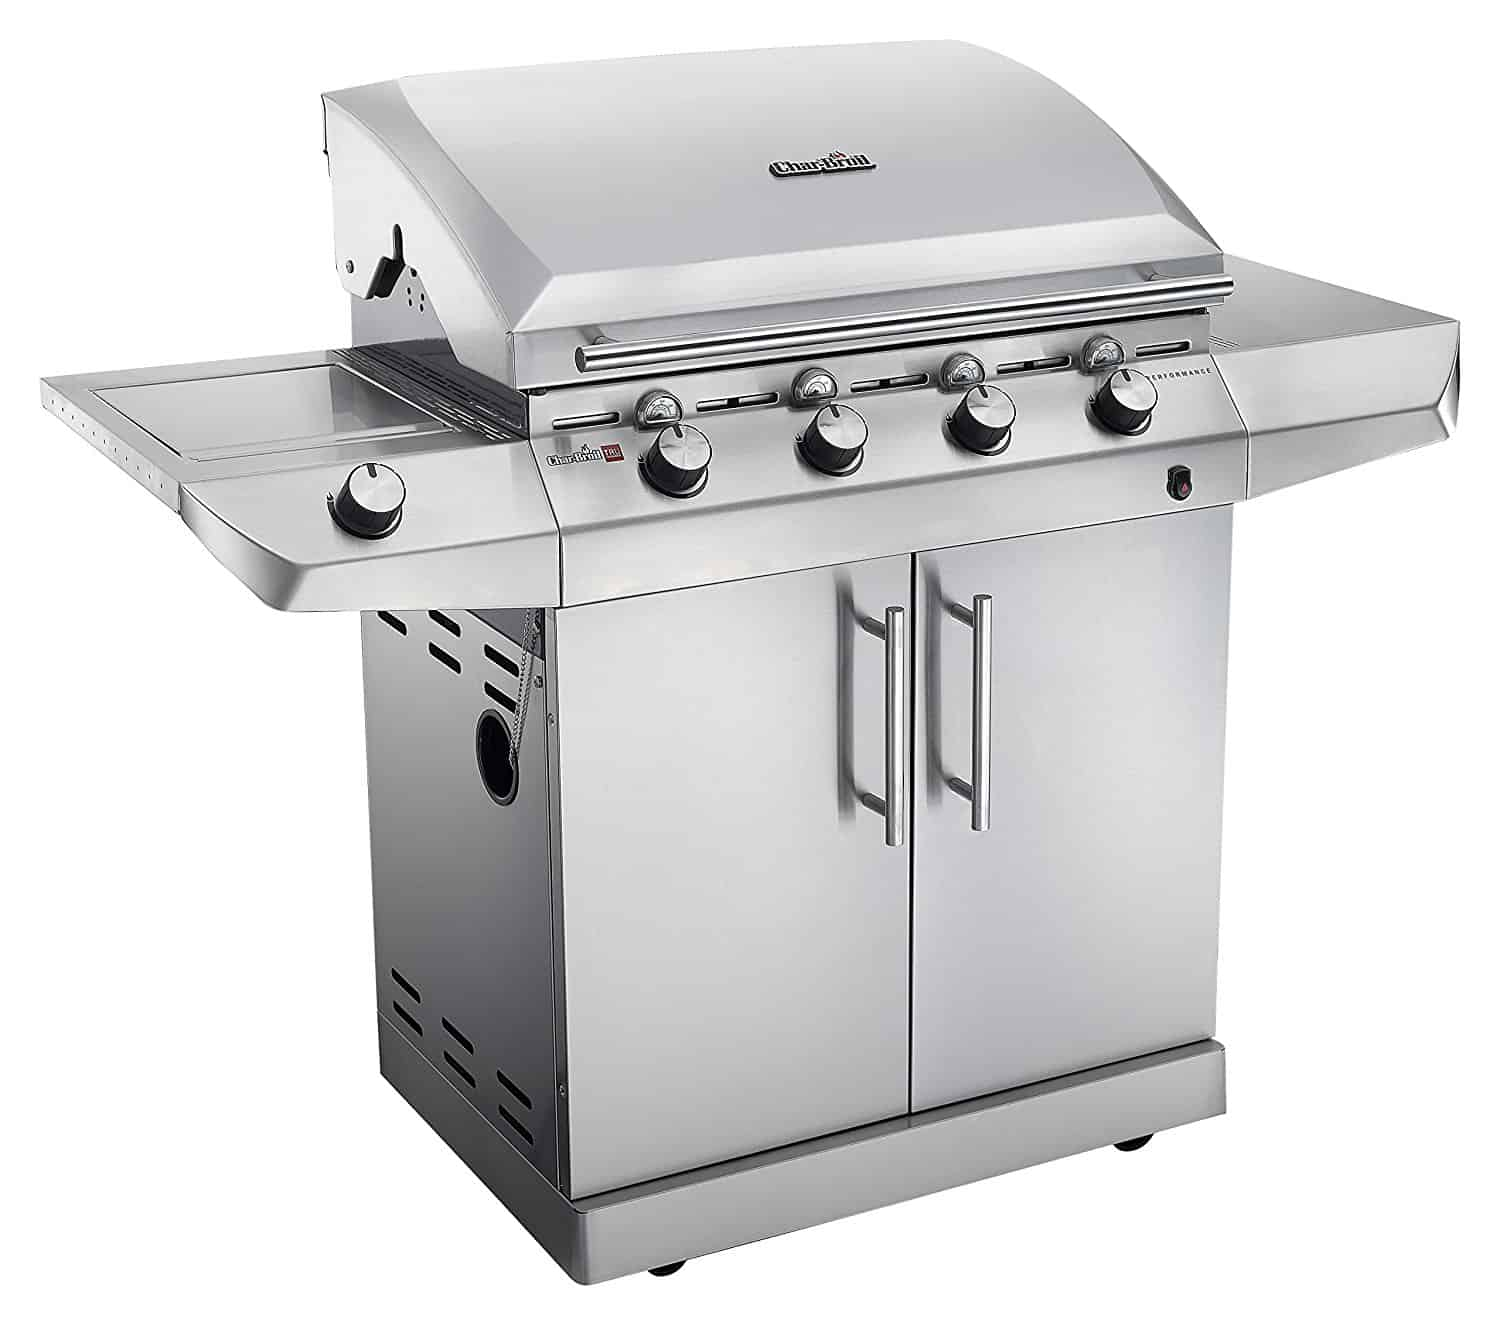 Char-Broil Performance Series T47G – Burner Gas BBQ Grill